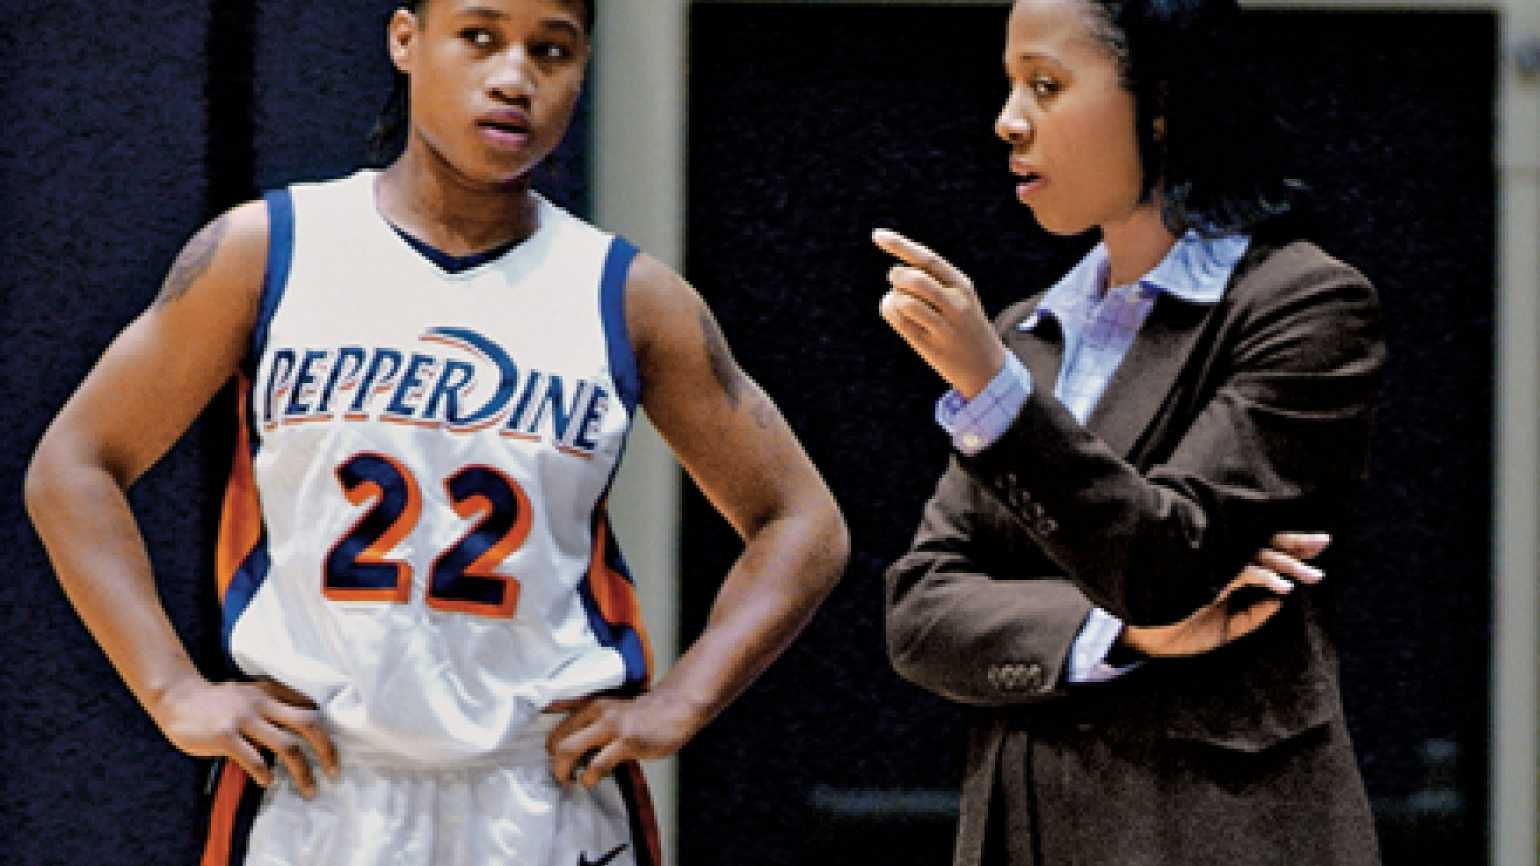 Coach Rousseau offers guidance to one of her Pepperdine players.